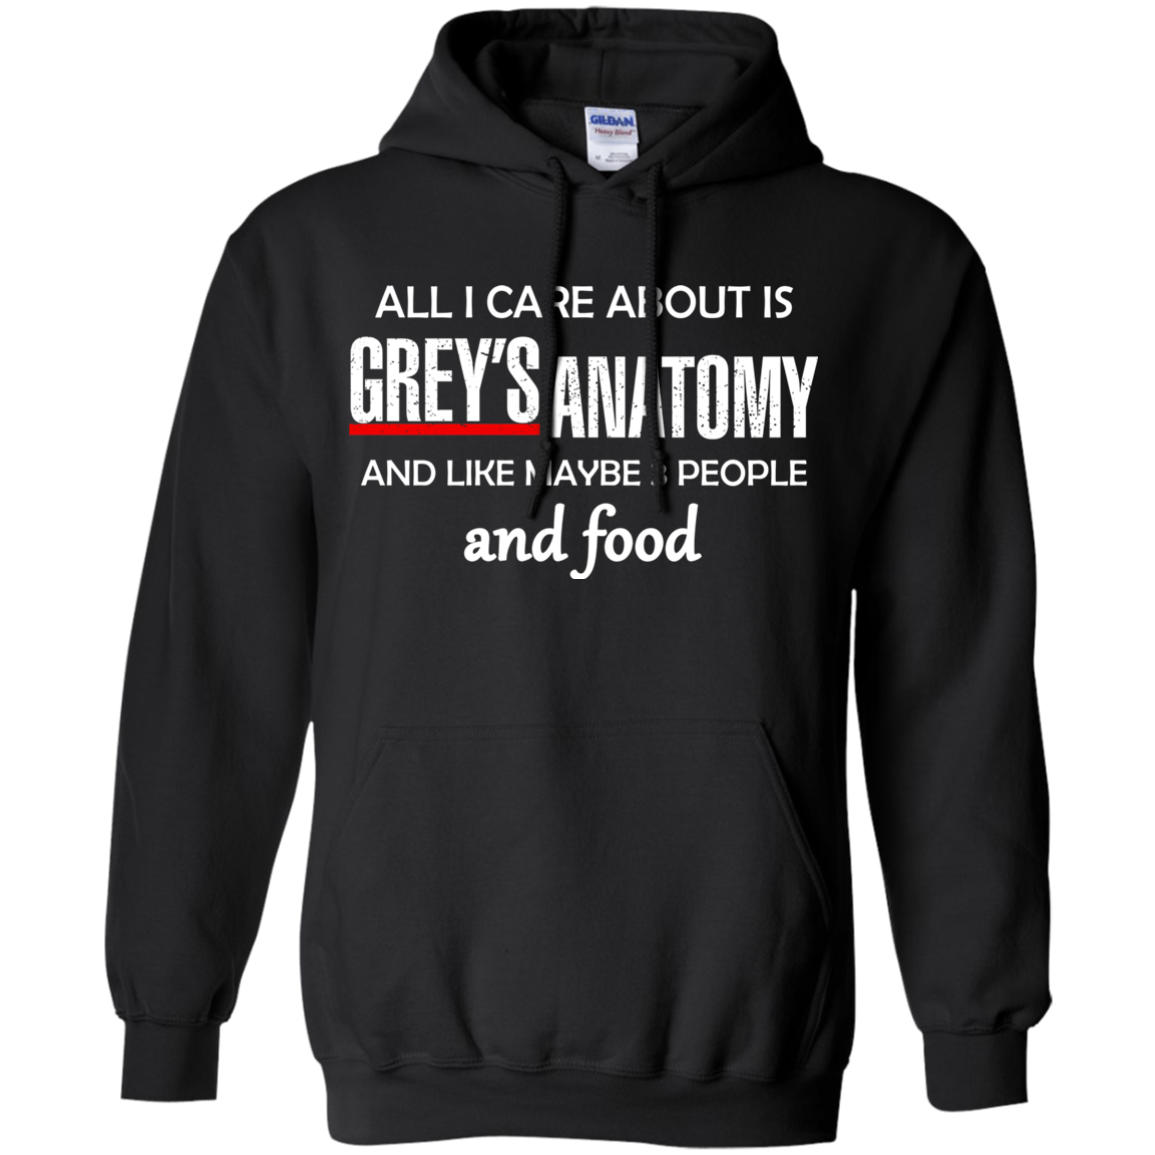 All I Care About Is Greys Anatomy and Food T Shirt  Sweater